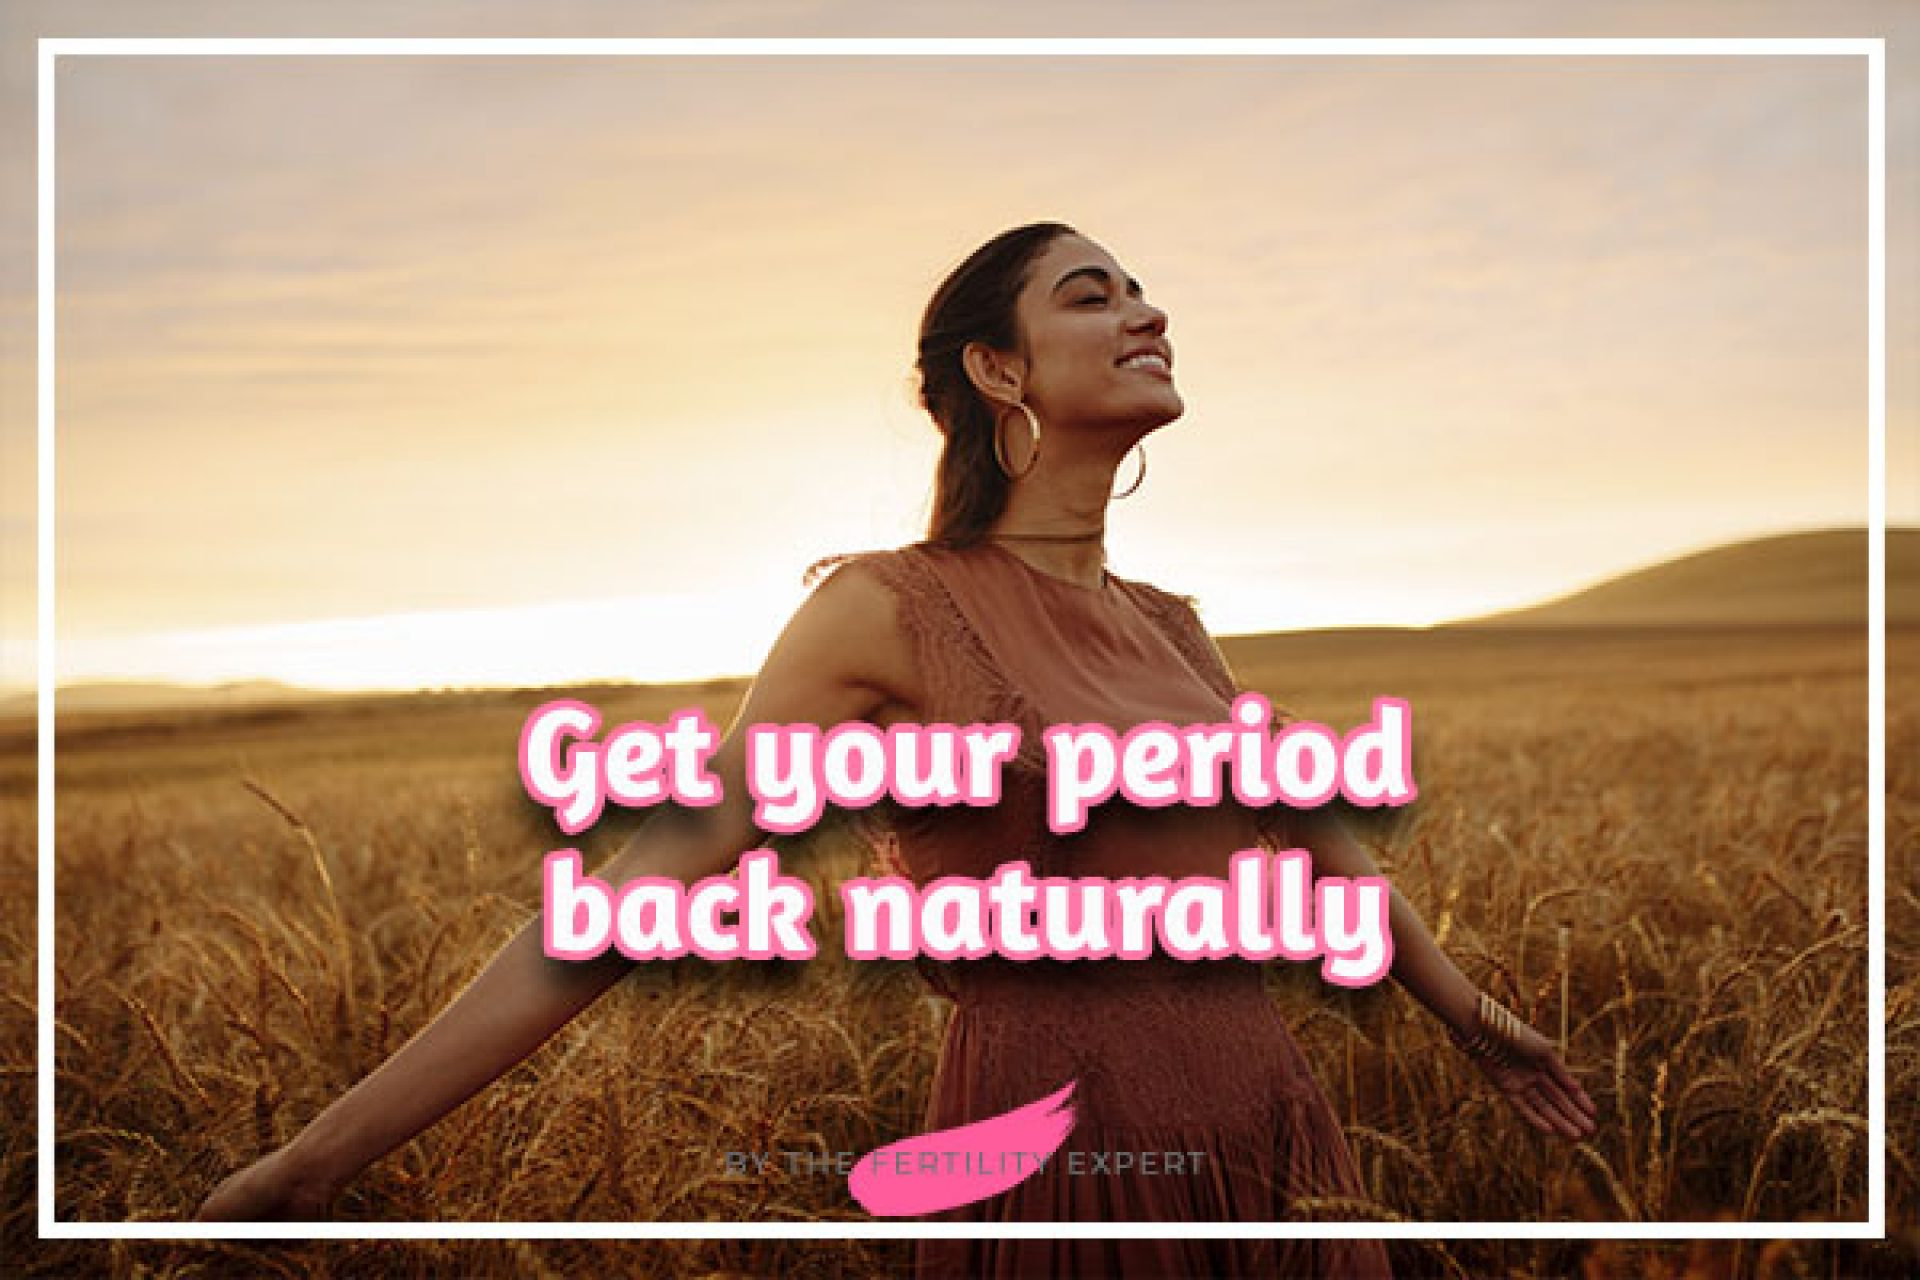 Get your period back naturally